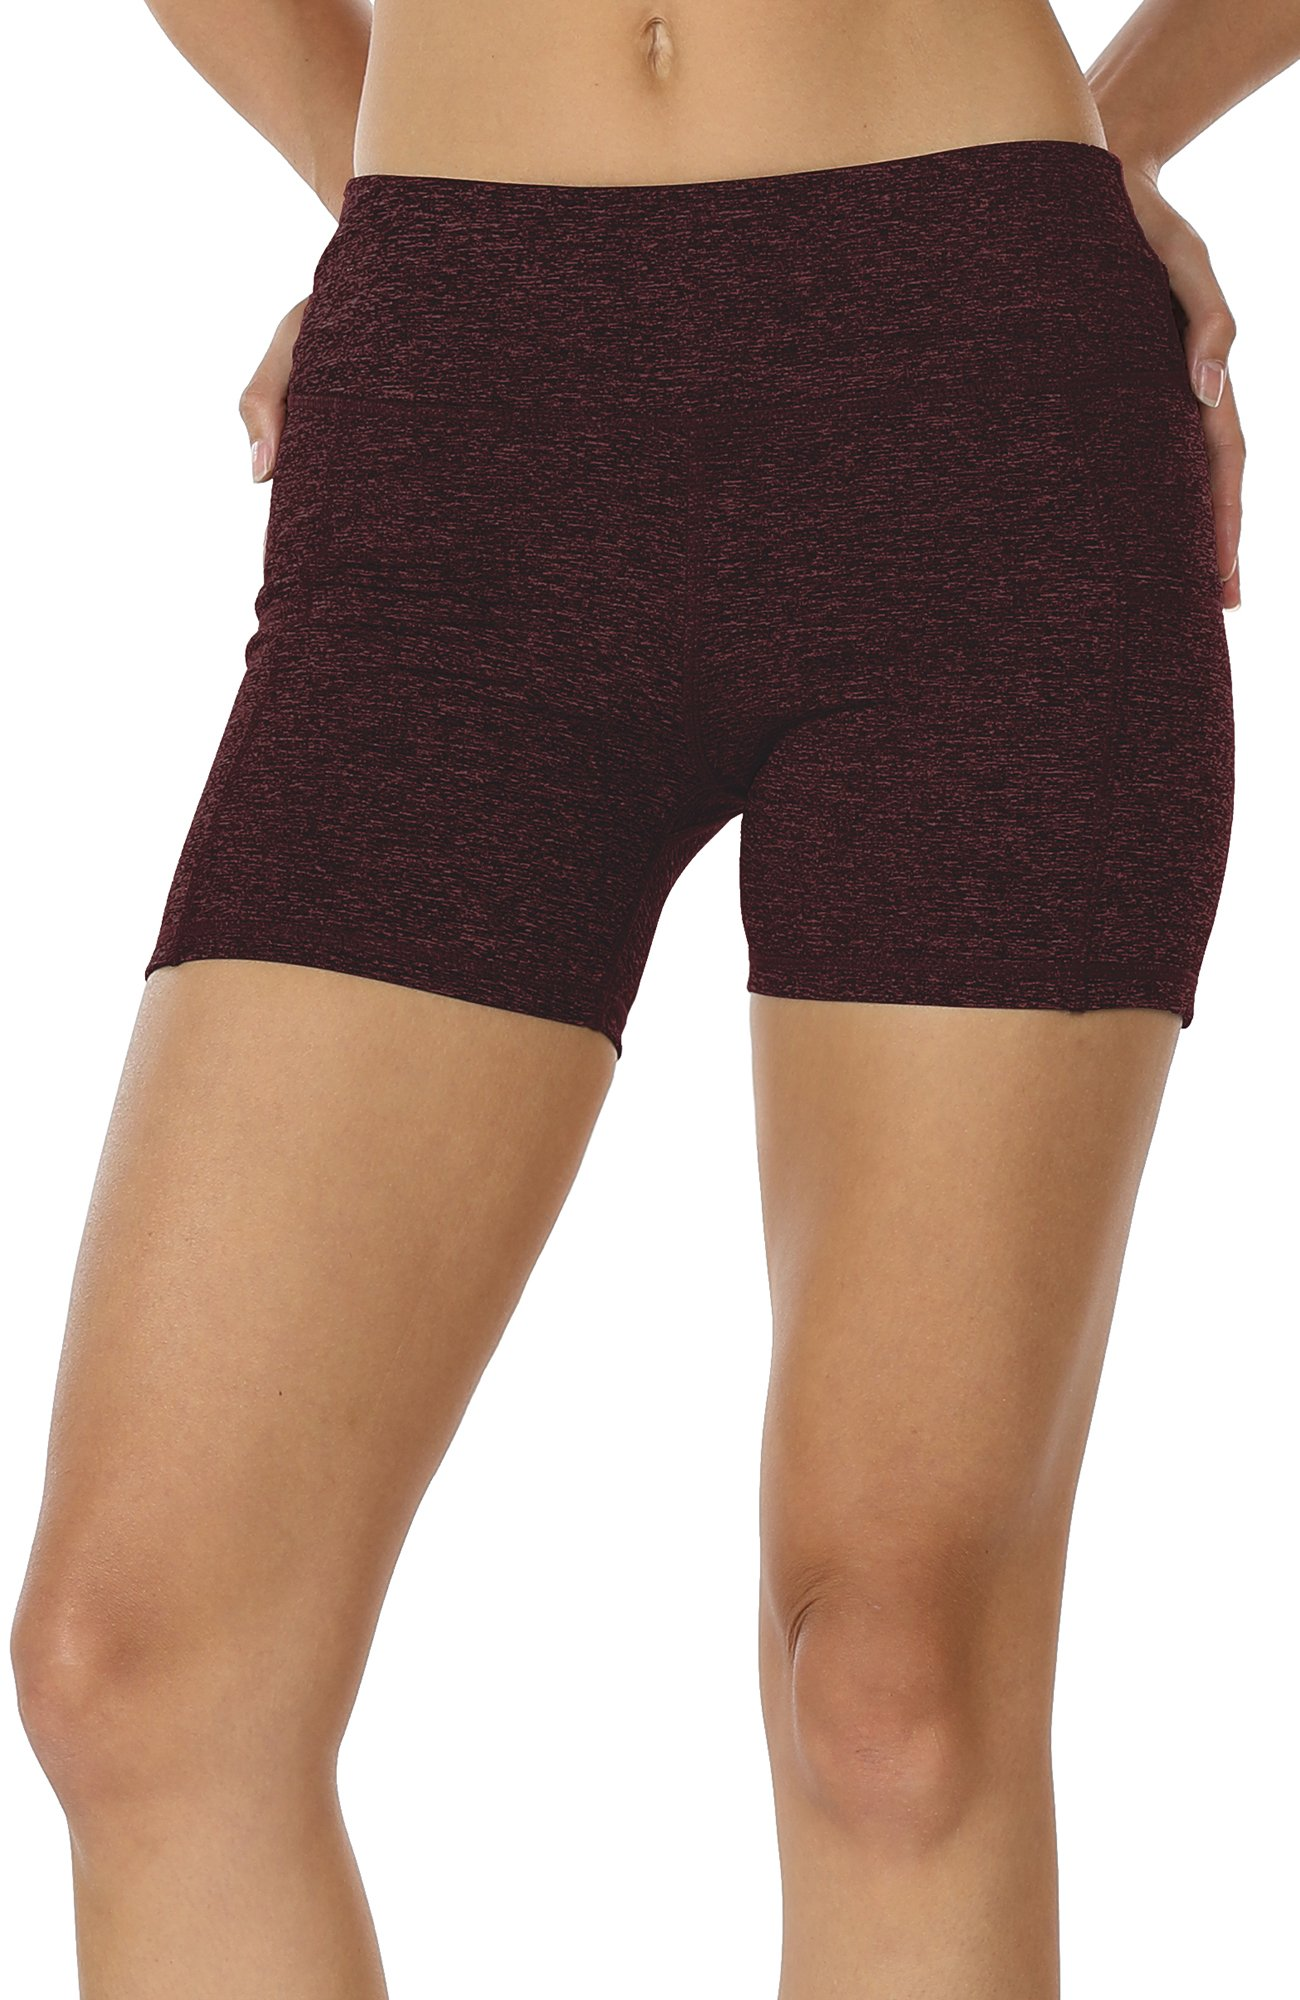 icyzone Workout Running Shorts For Women - Yoga Exercise Lounge Athletic Activewear Compression Shorts With Pockets & Drawstring (M, Wine)